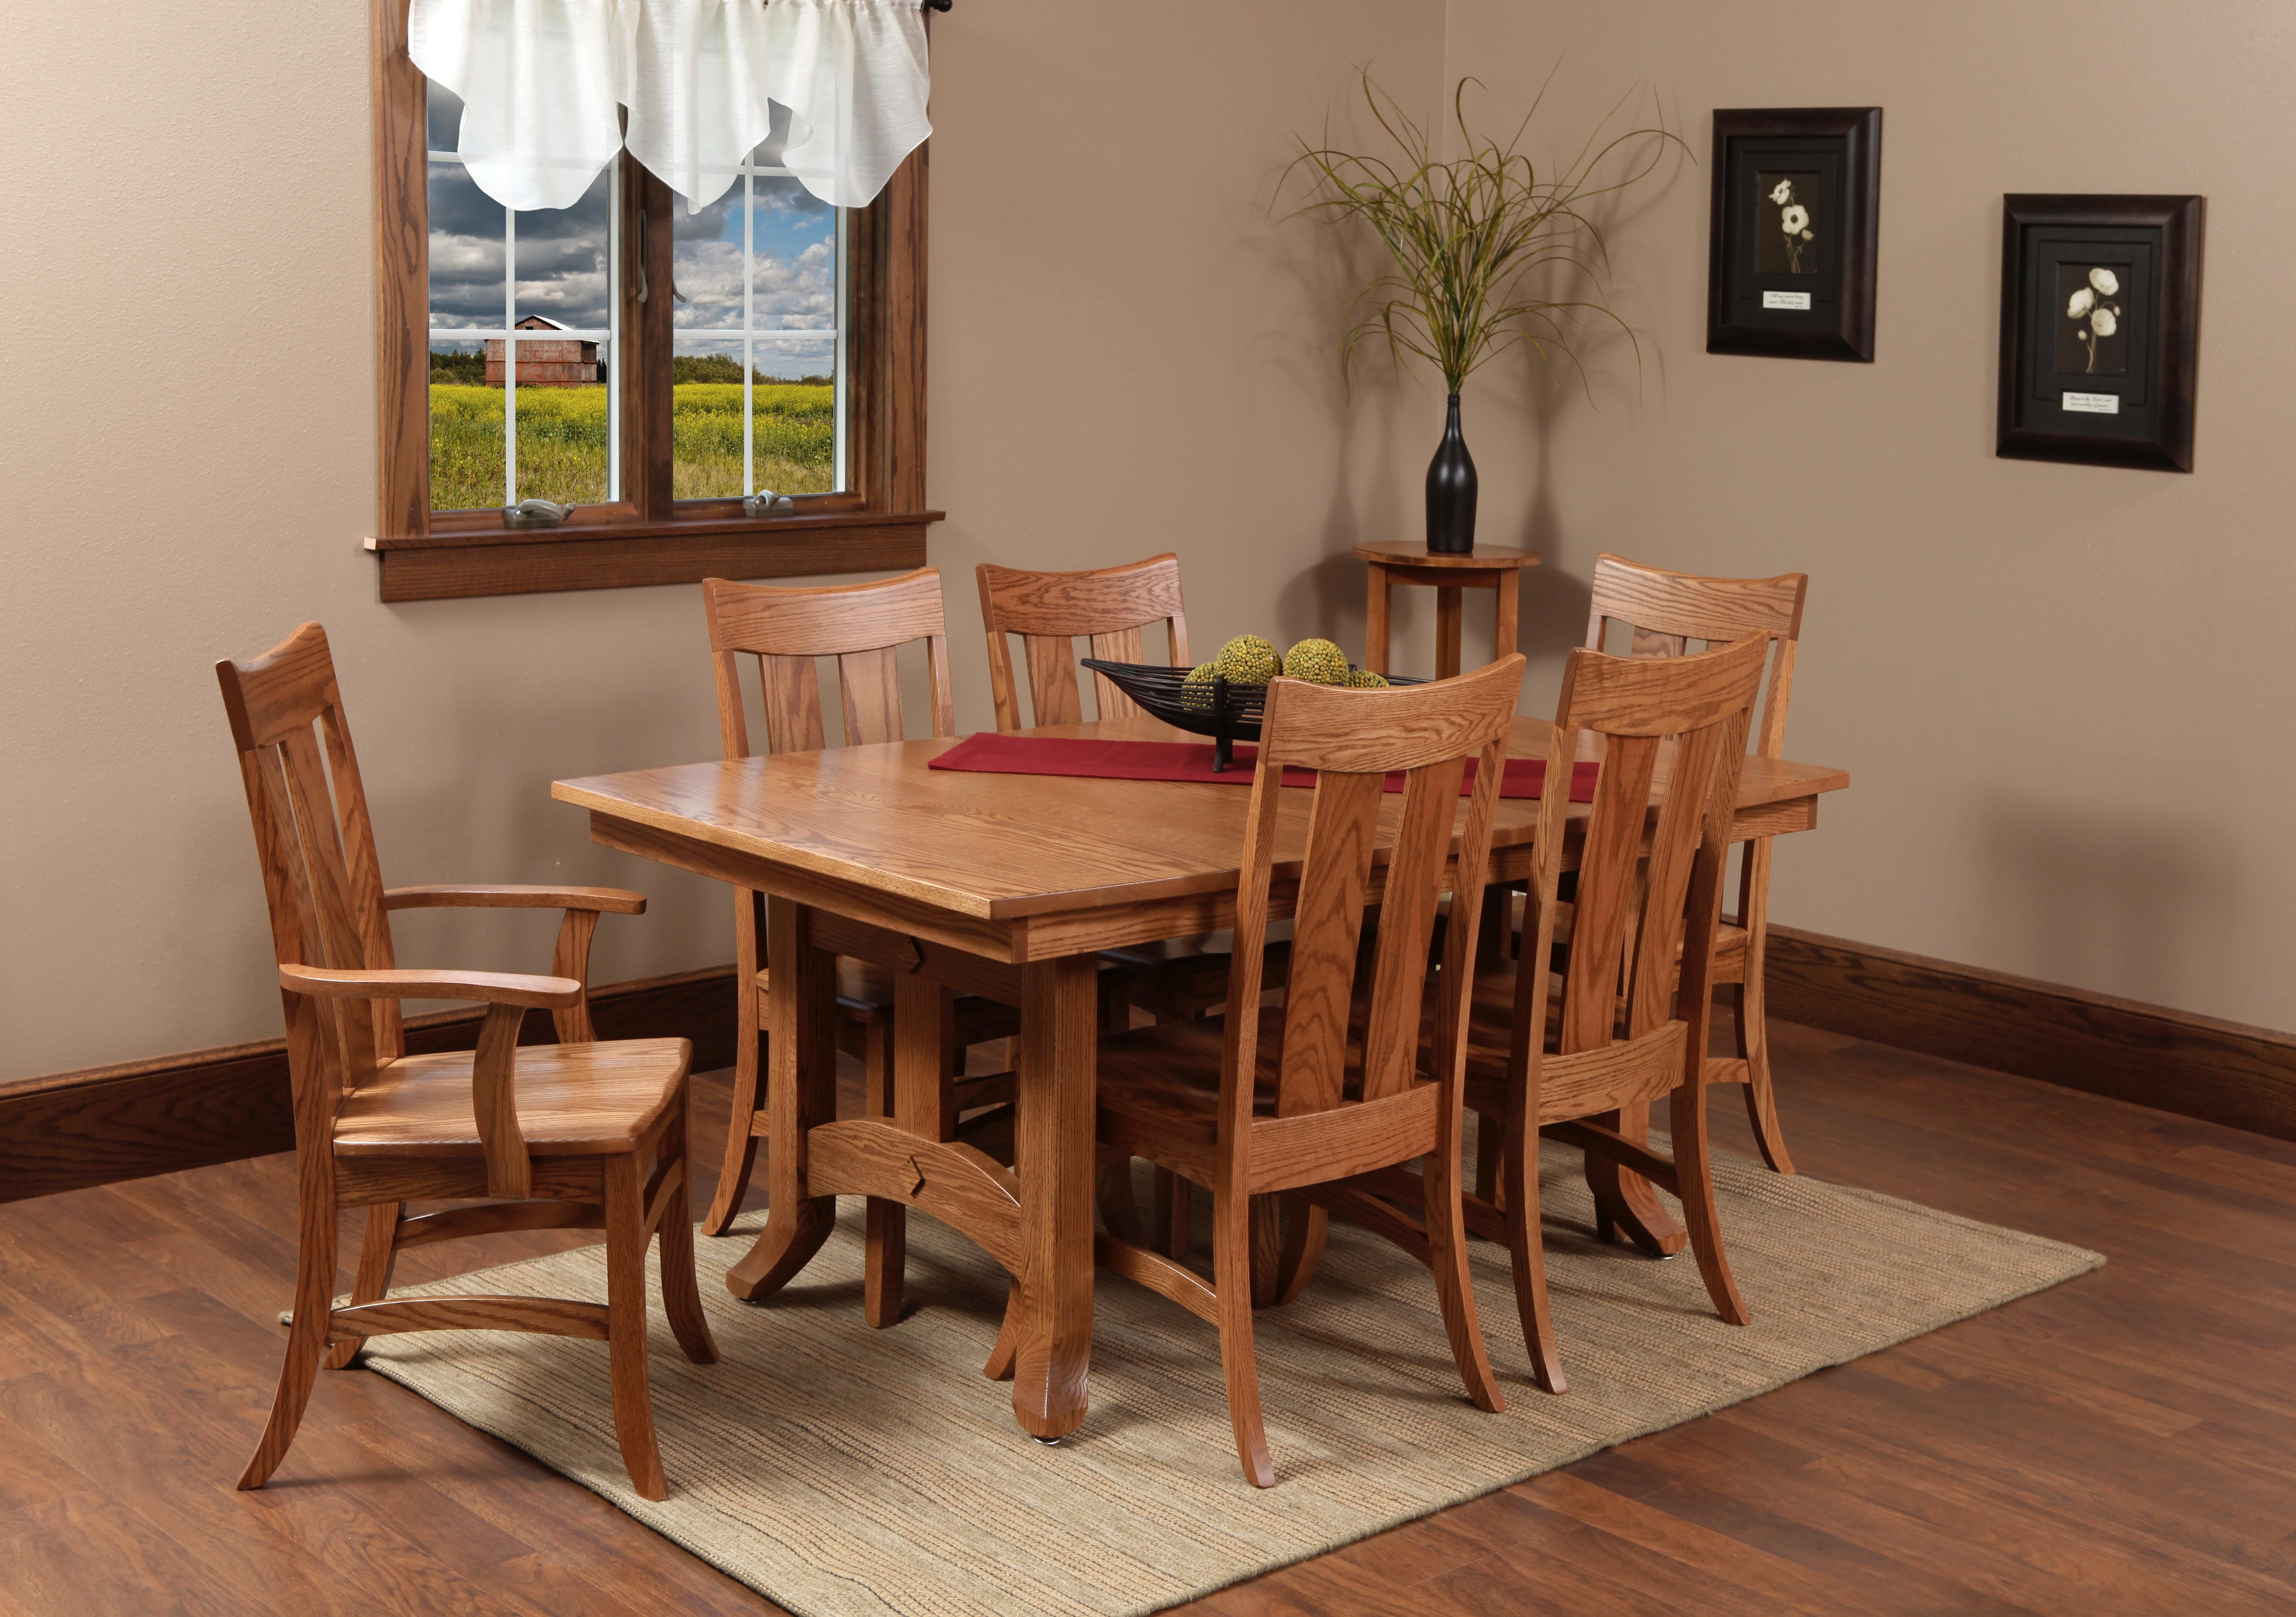 nothing found for dining room dining sets biltmore table and chair set biltmore set   amish dining sets   pinterest   dining sets  rh   pinterest com